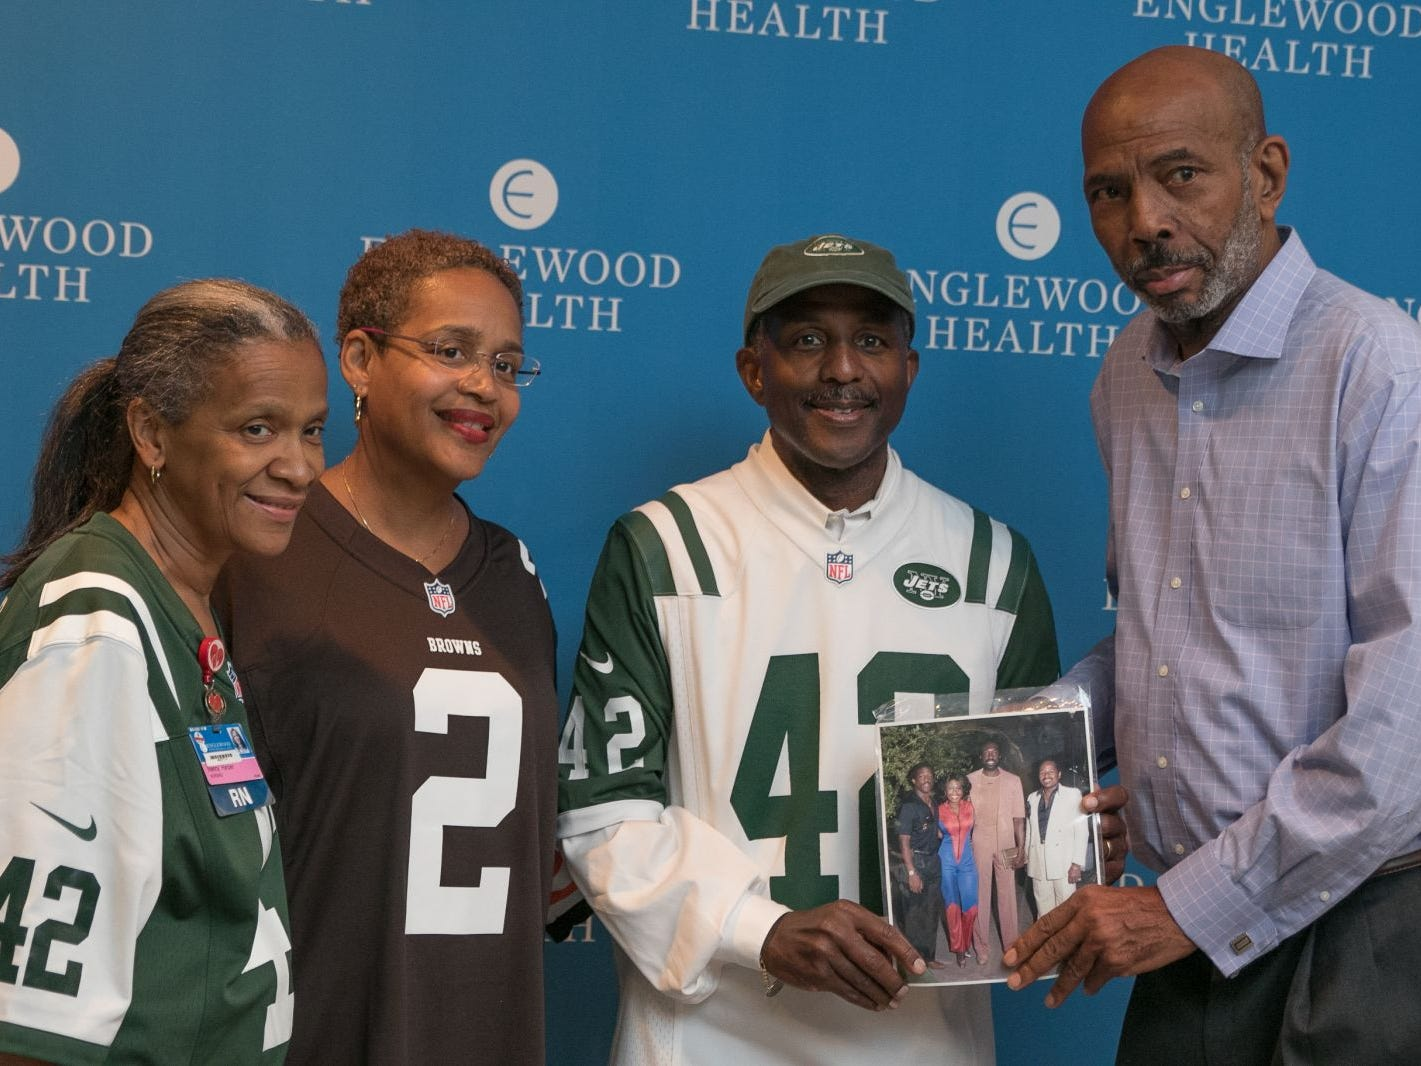 Nancy Harper, Kimberly Cummings, Former NY Jet Bruce Harper, Richard Standard. Englewood Health hosted its Men's Health and Football event with former Jets and Giants players and Don La Greca from ESPN radio. Attendees watched the Thursday night football game while receiving advice about staying healthy and tackling health problems early on. 09/20/2018